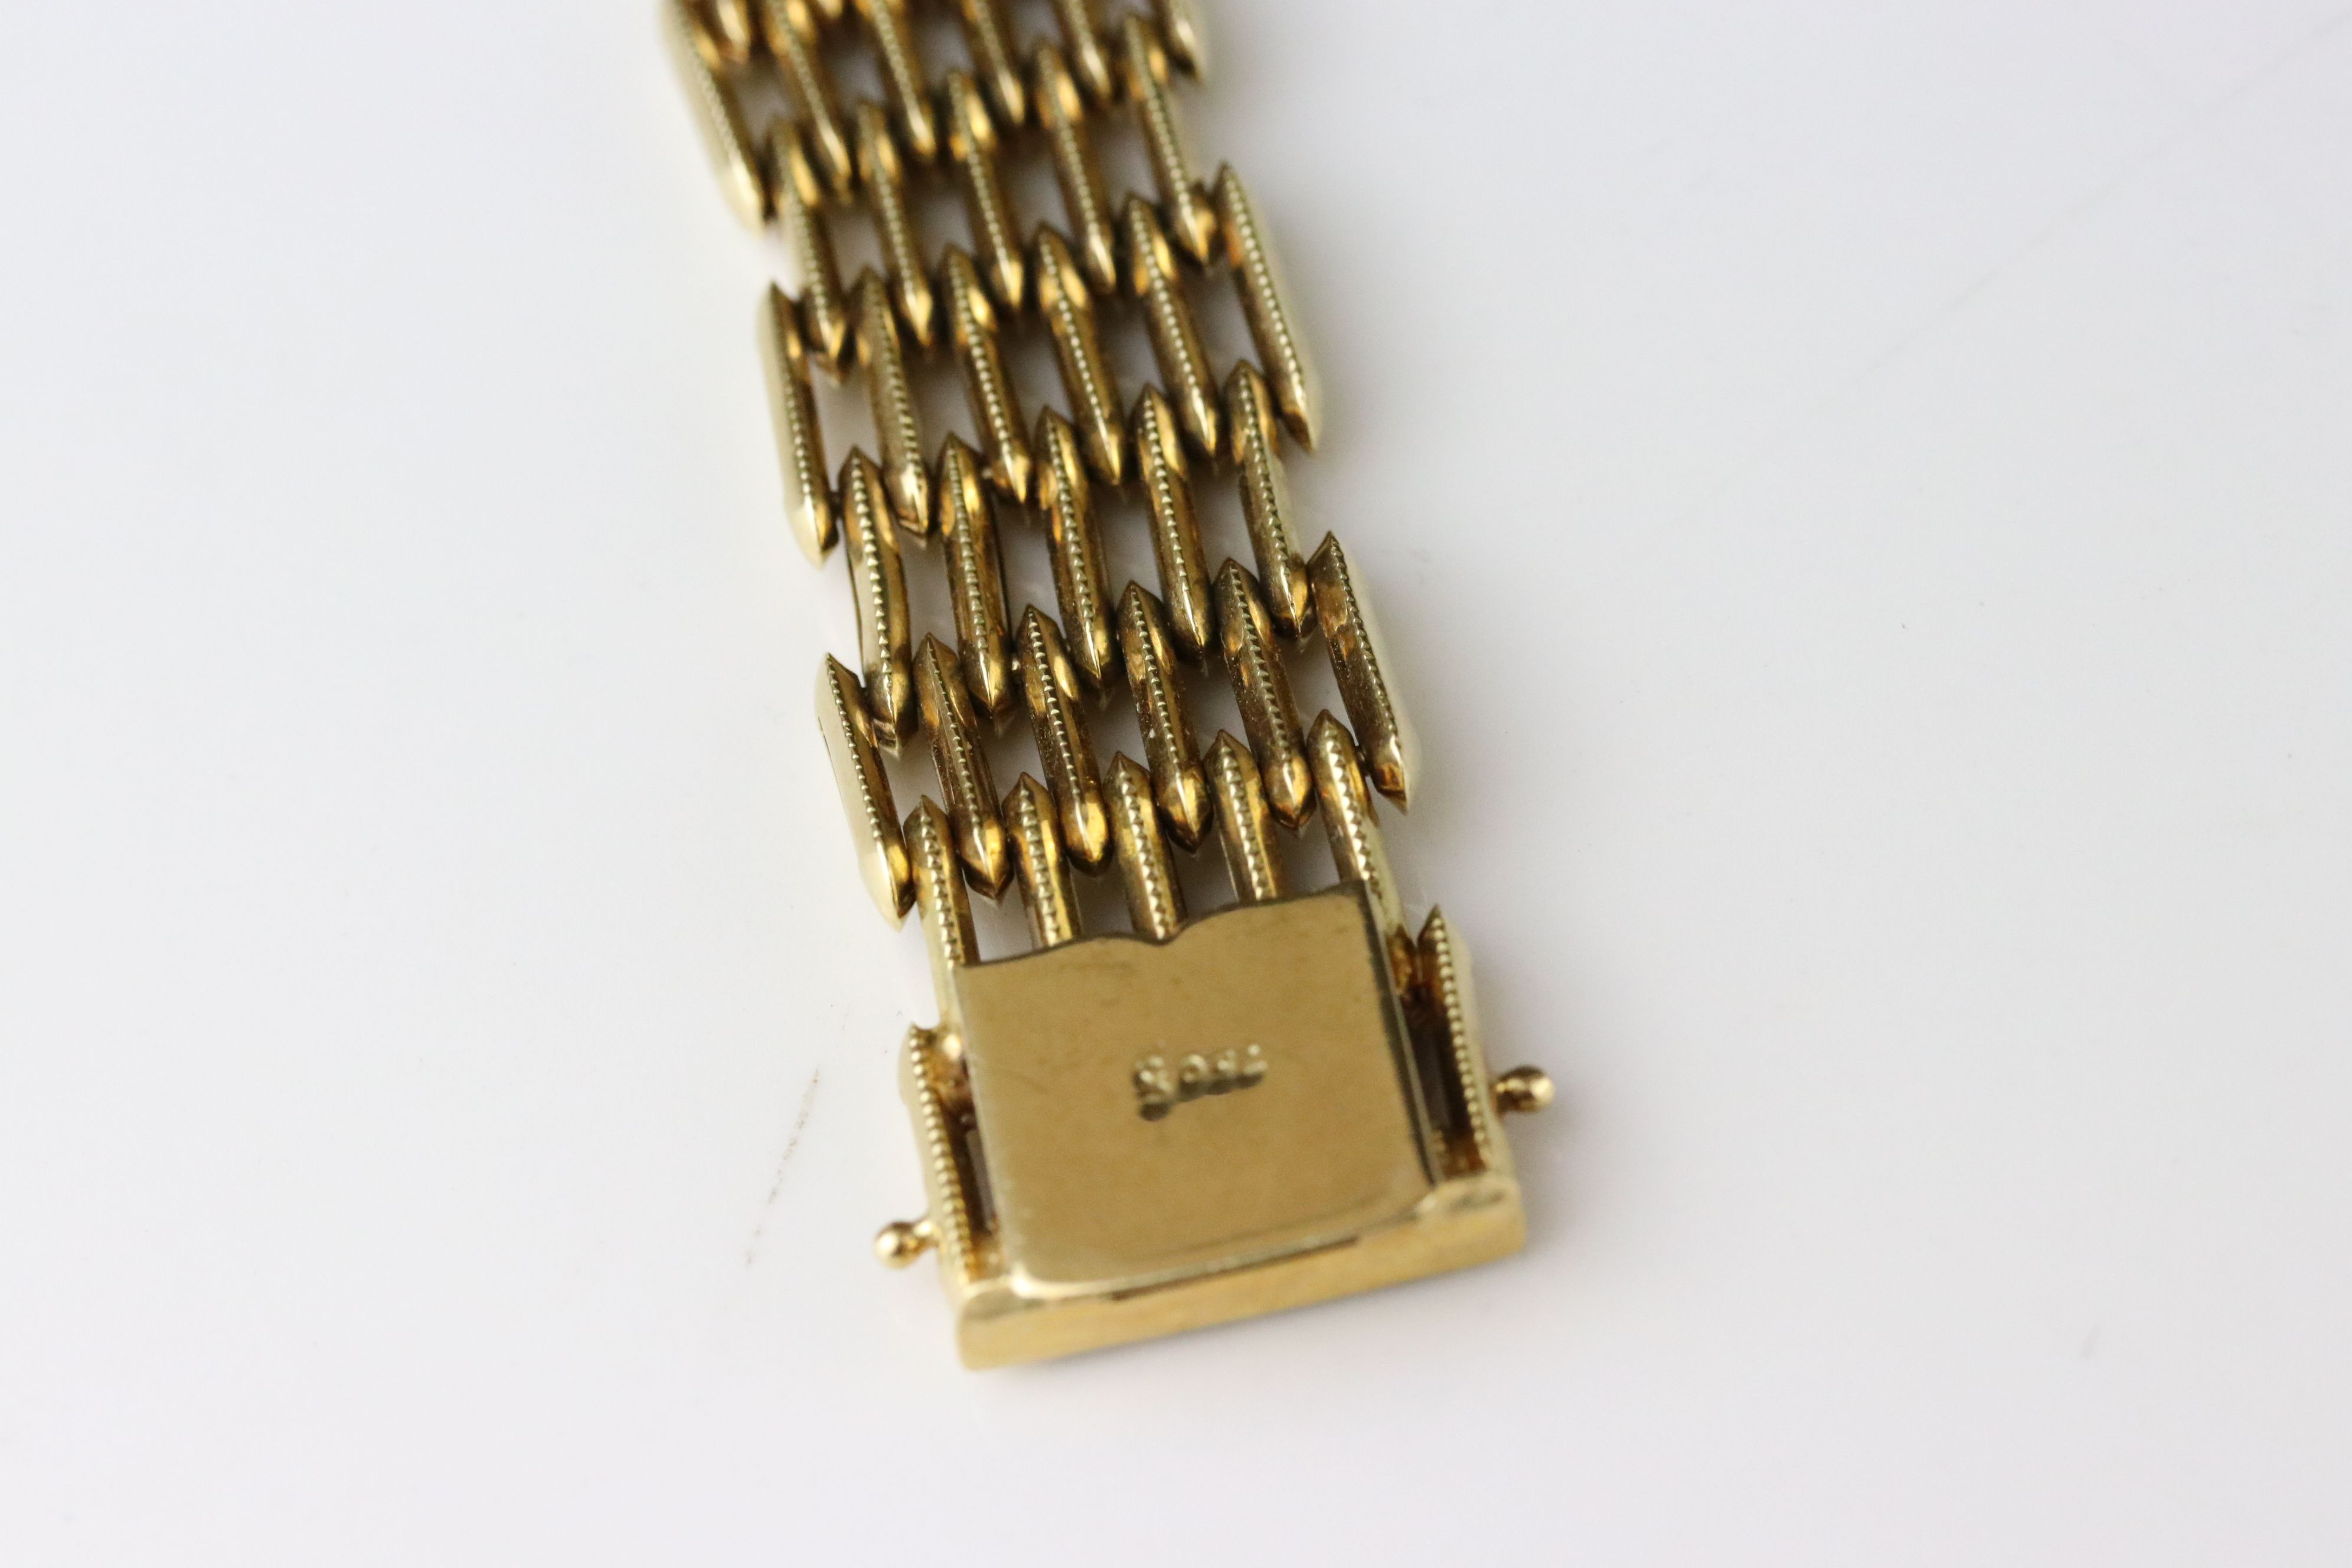 18ct yellow gold gate link style bracelet, tongue and box clasp, length approx 19cm - Image 3 of 5